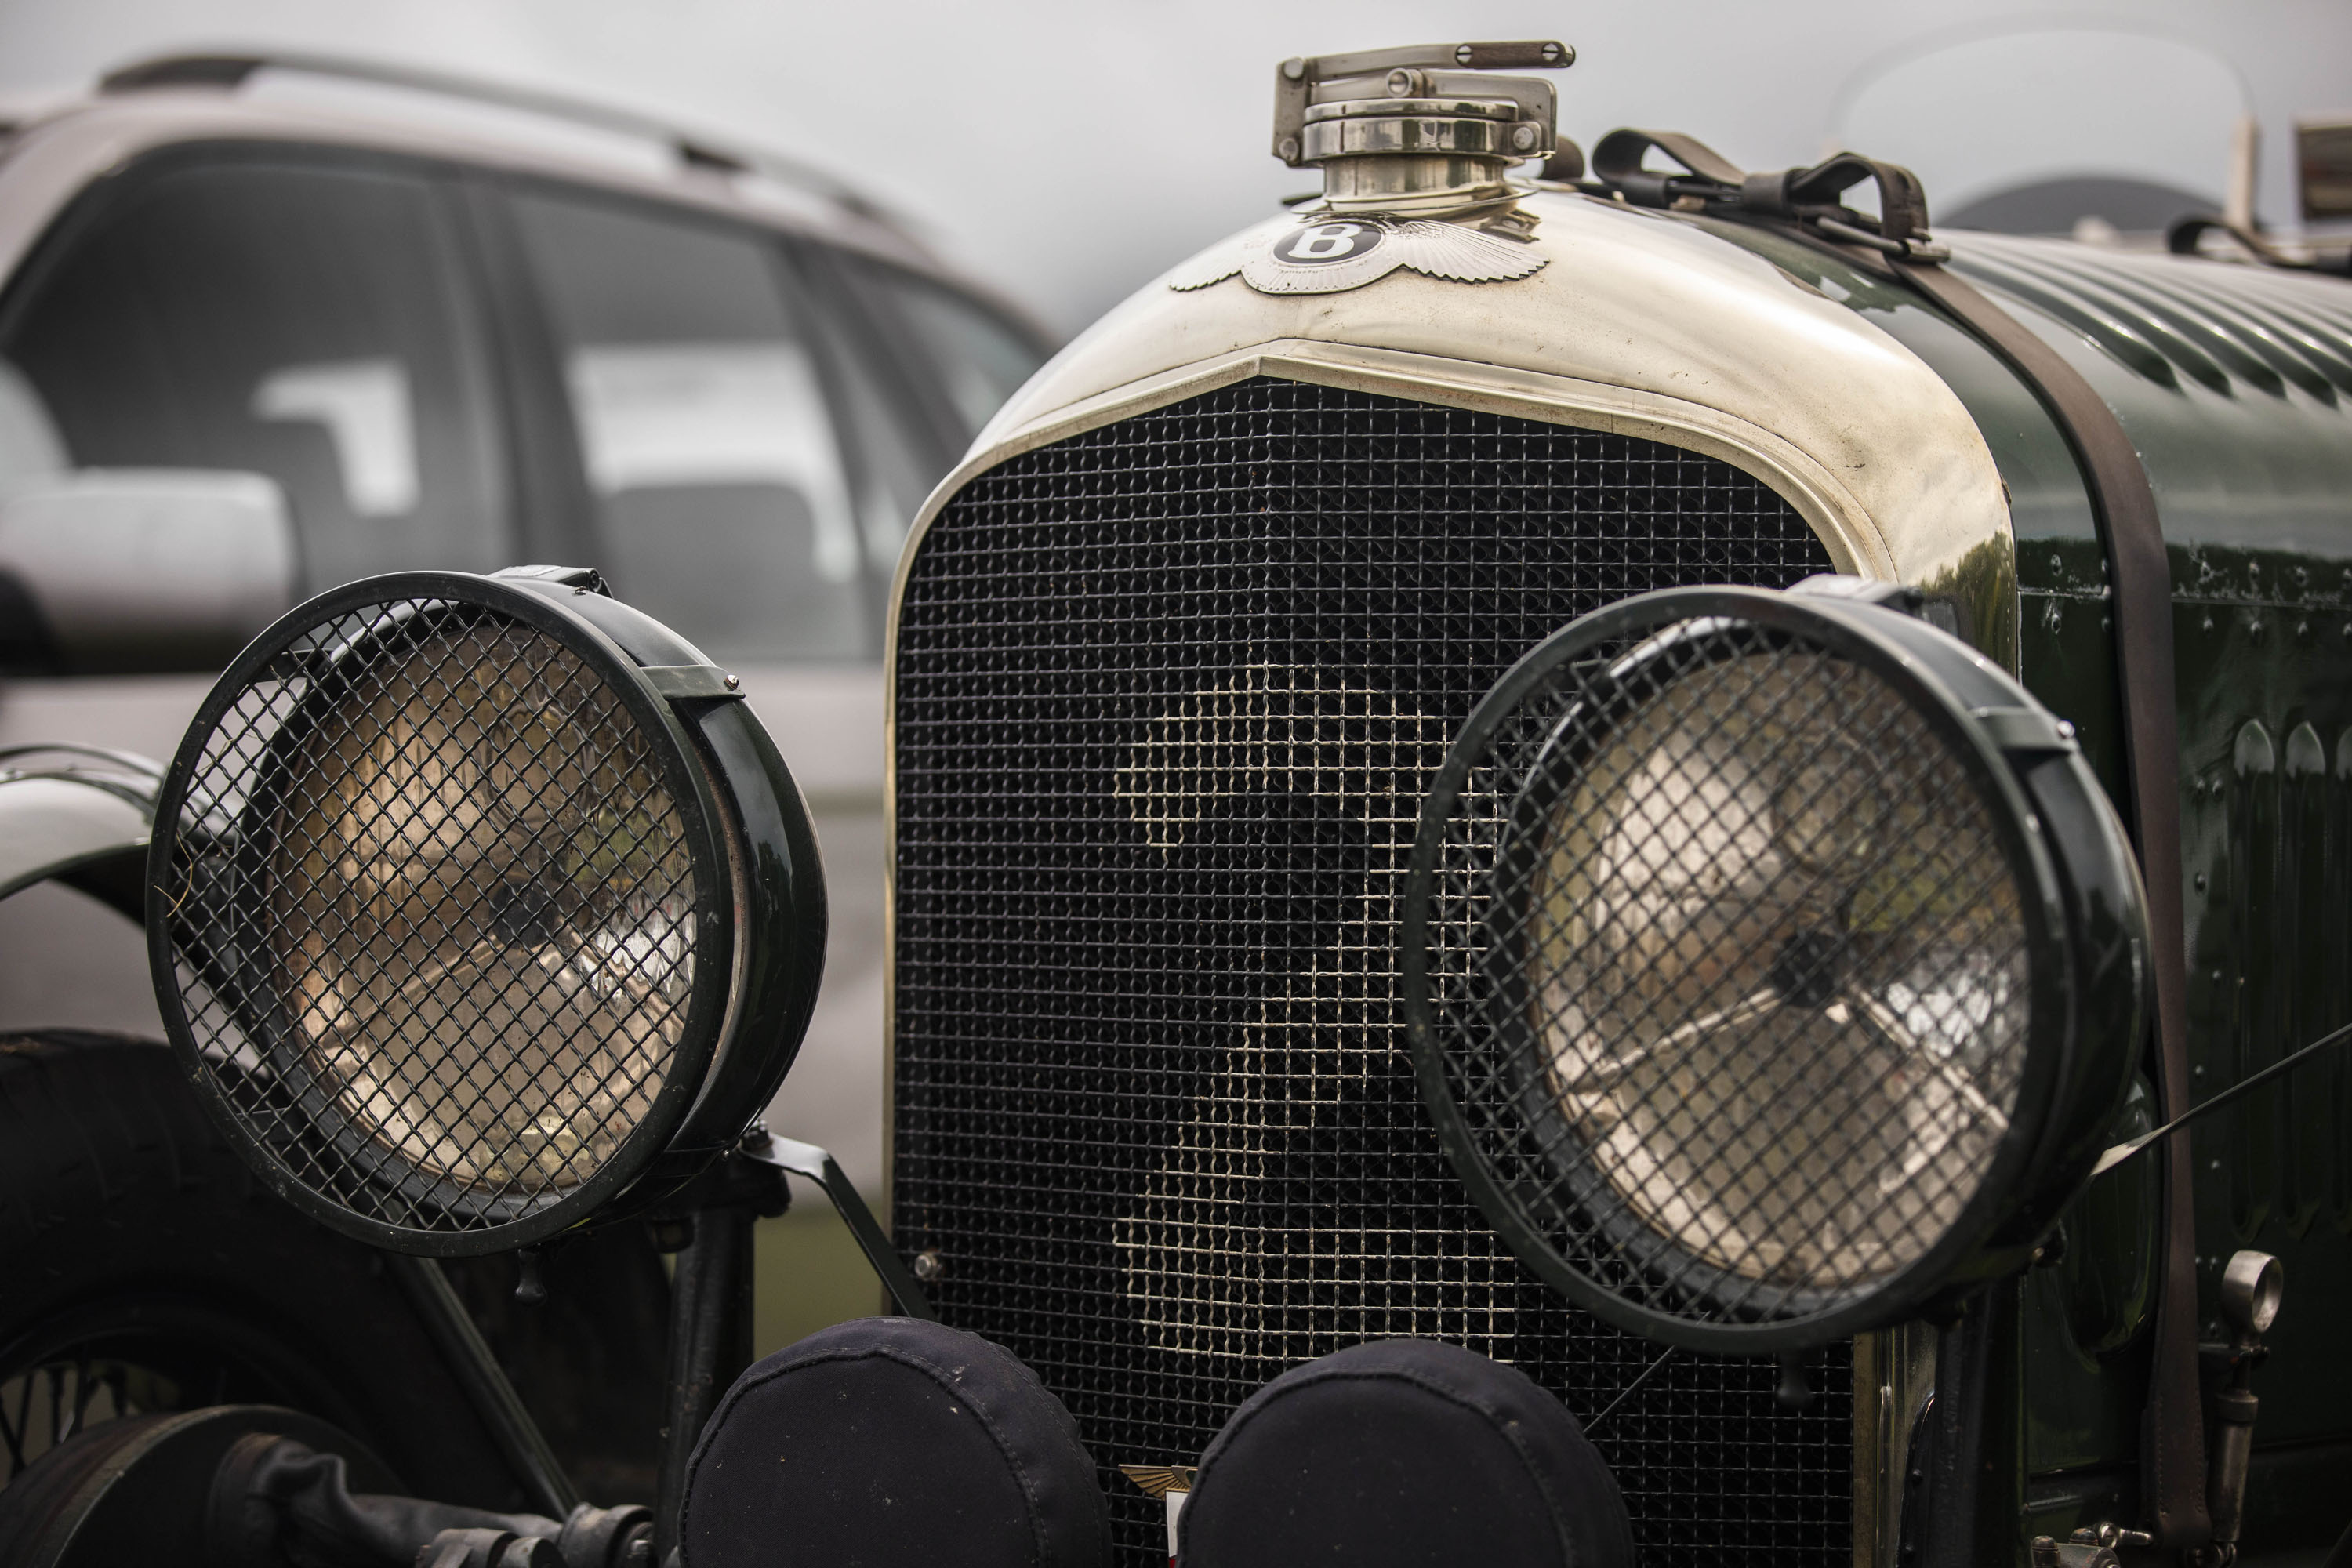 Bentley 4 ½ Litre grille detail